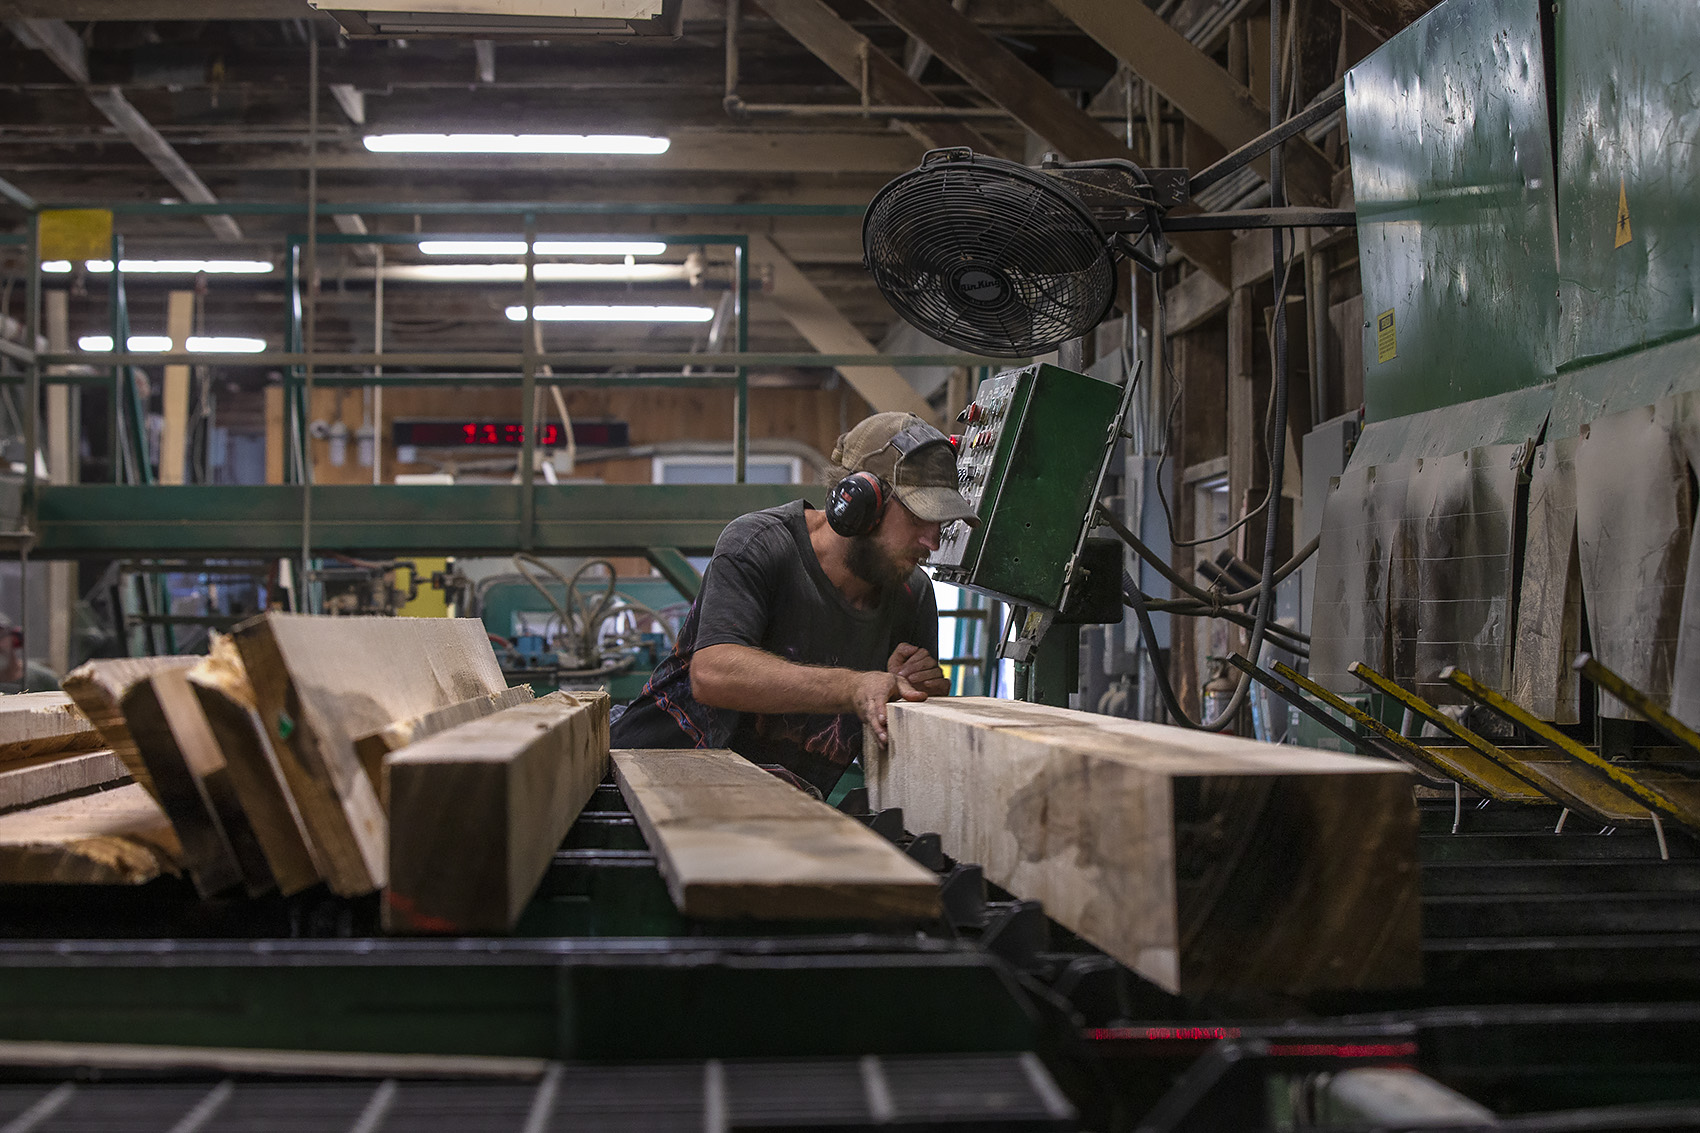 An employee inspects oak boards before they are sorted at Allard Lumber in Brattleboro, Vermont. (Jesse Costa/WBUR)